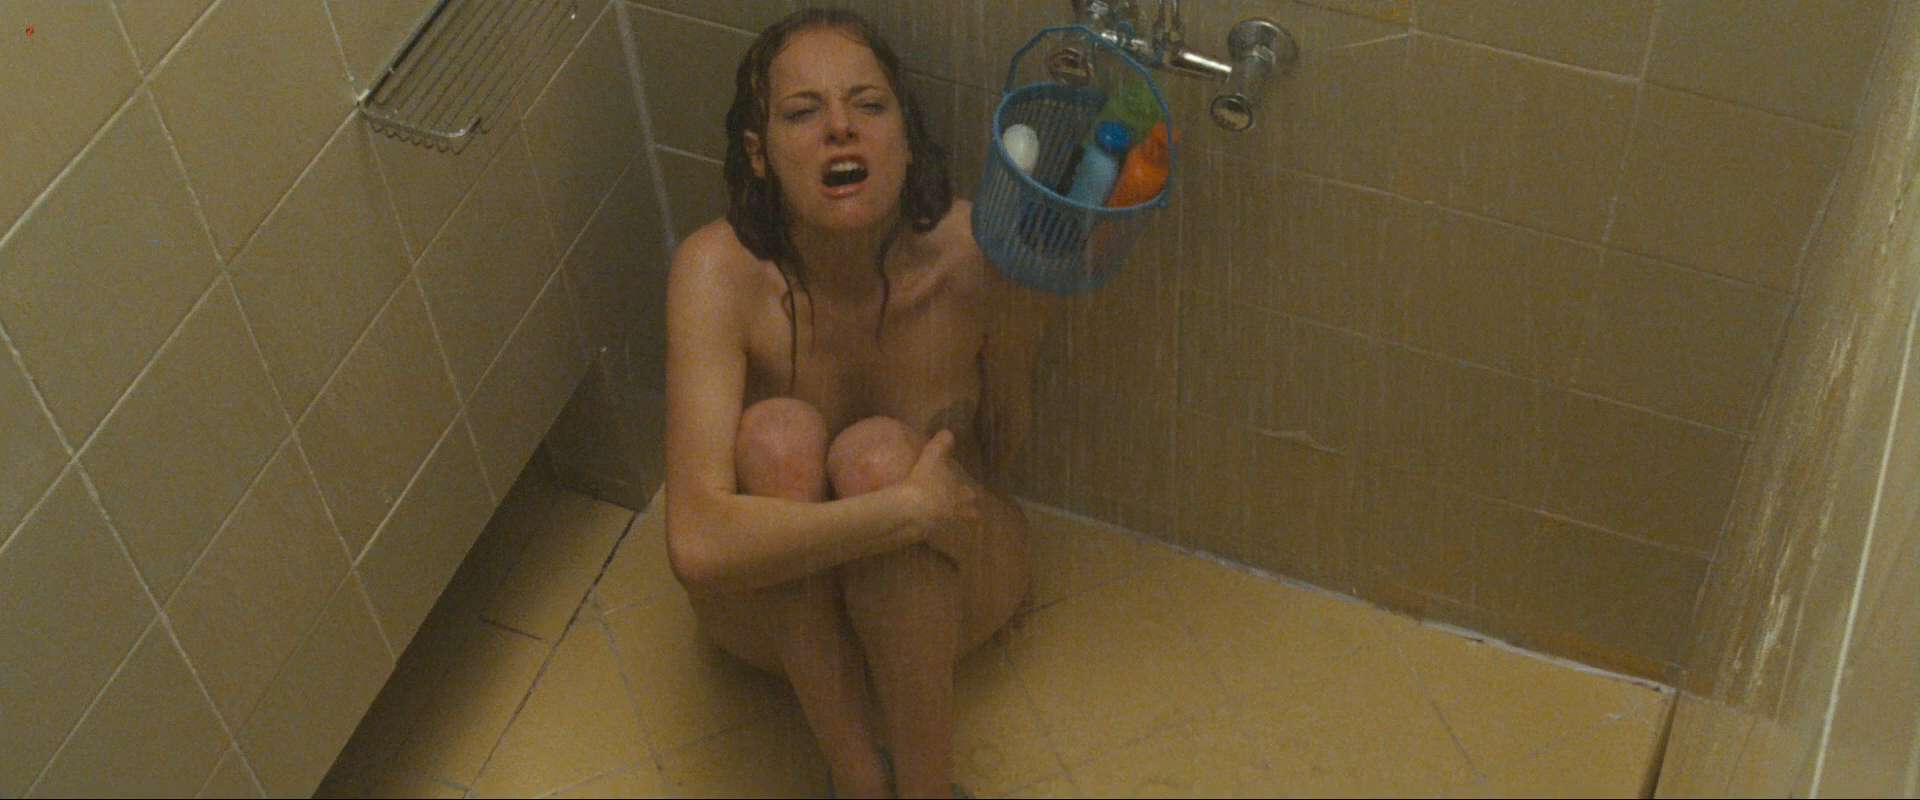 Hannah Britland Naked with bijou phillips nude in shower and nude breastfeeding - it's alive